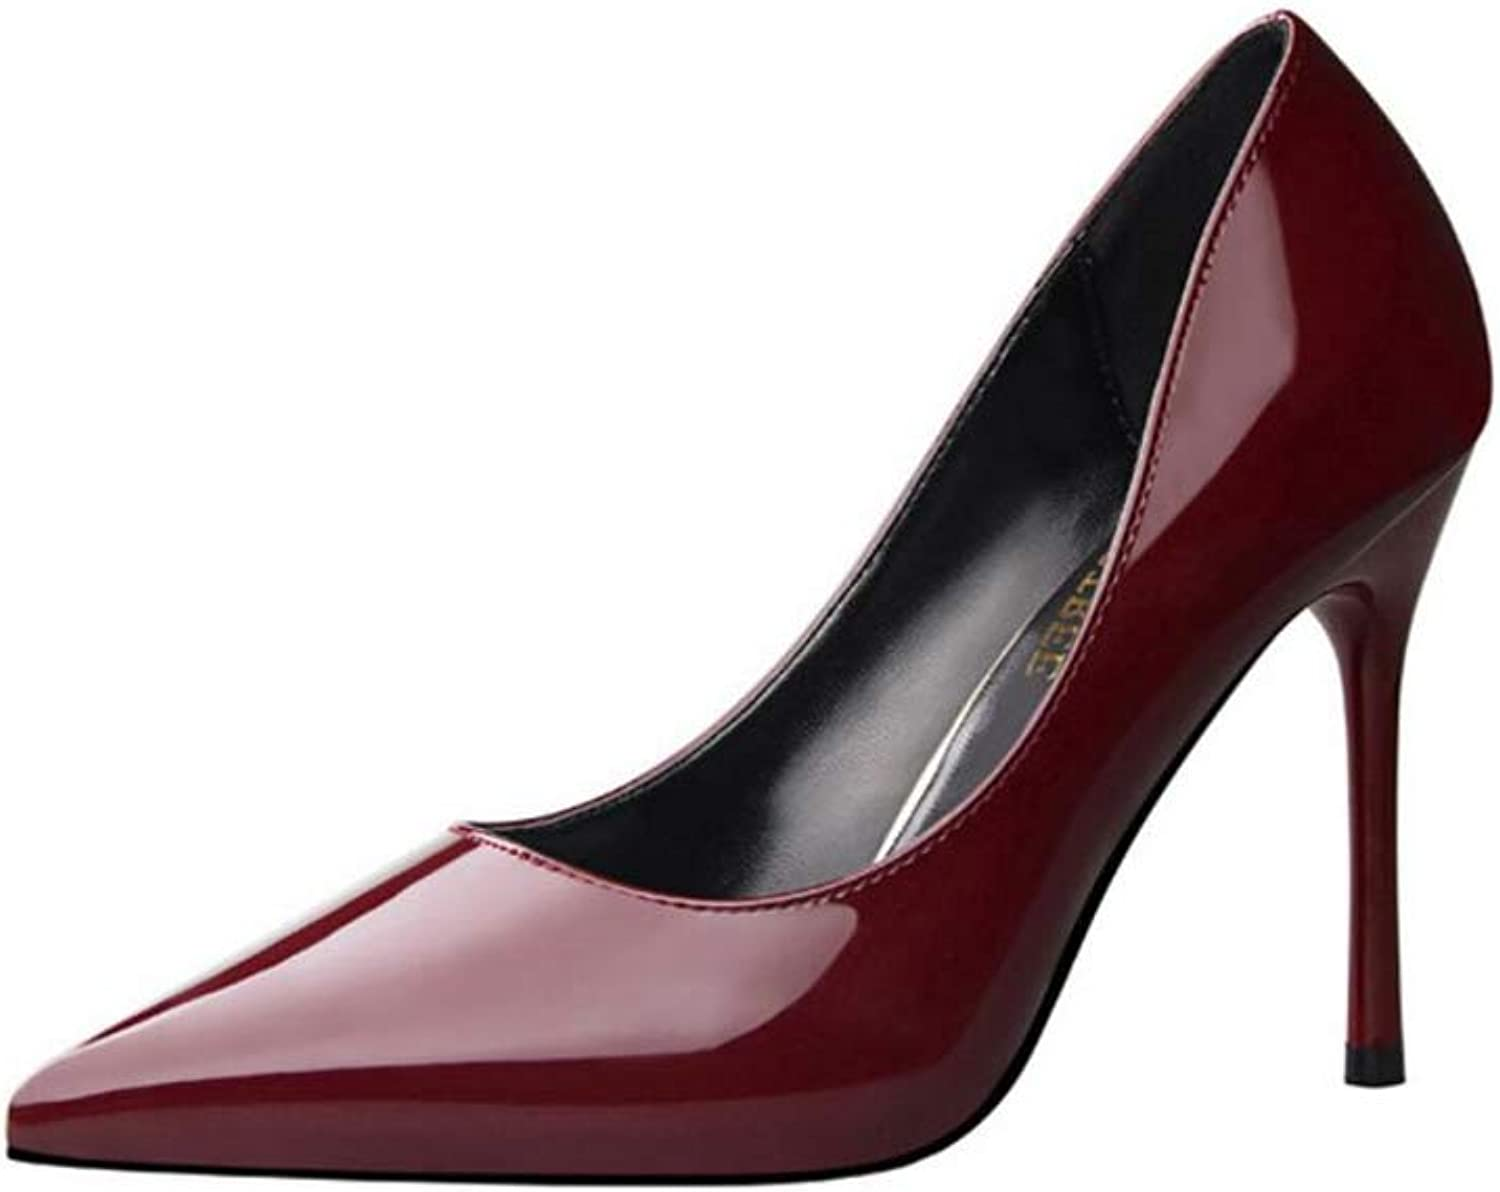 Meimeioo High Heels, Womens Pointed Toe Slip on Stilettos Party Wedding Pumps Basic shoes